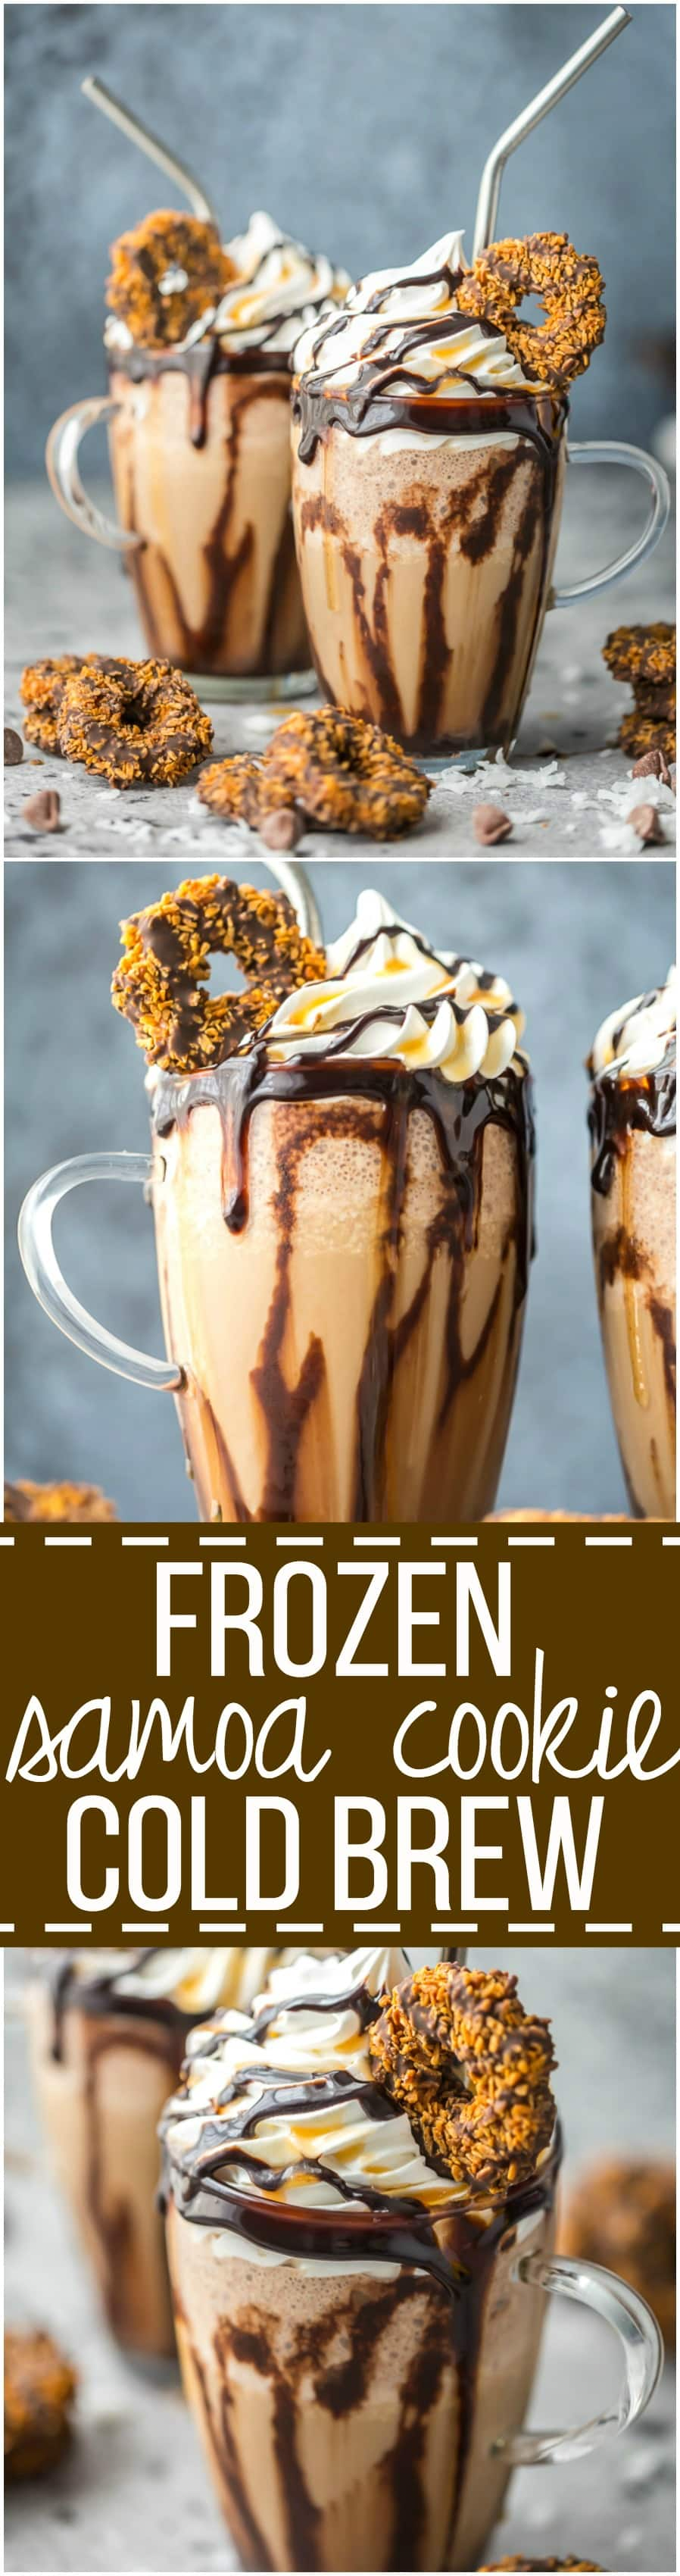 This FROZEN SAMOA COOKIE COLD BREW COFFEE is the frozen coffee you need to get through ANY day. Loaded with coconut, chocolate, caramel, and cold brew coffee. The ultimate!